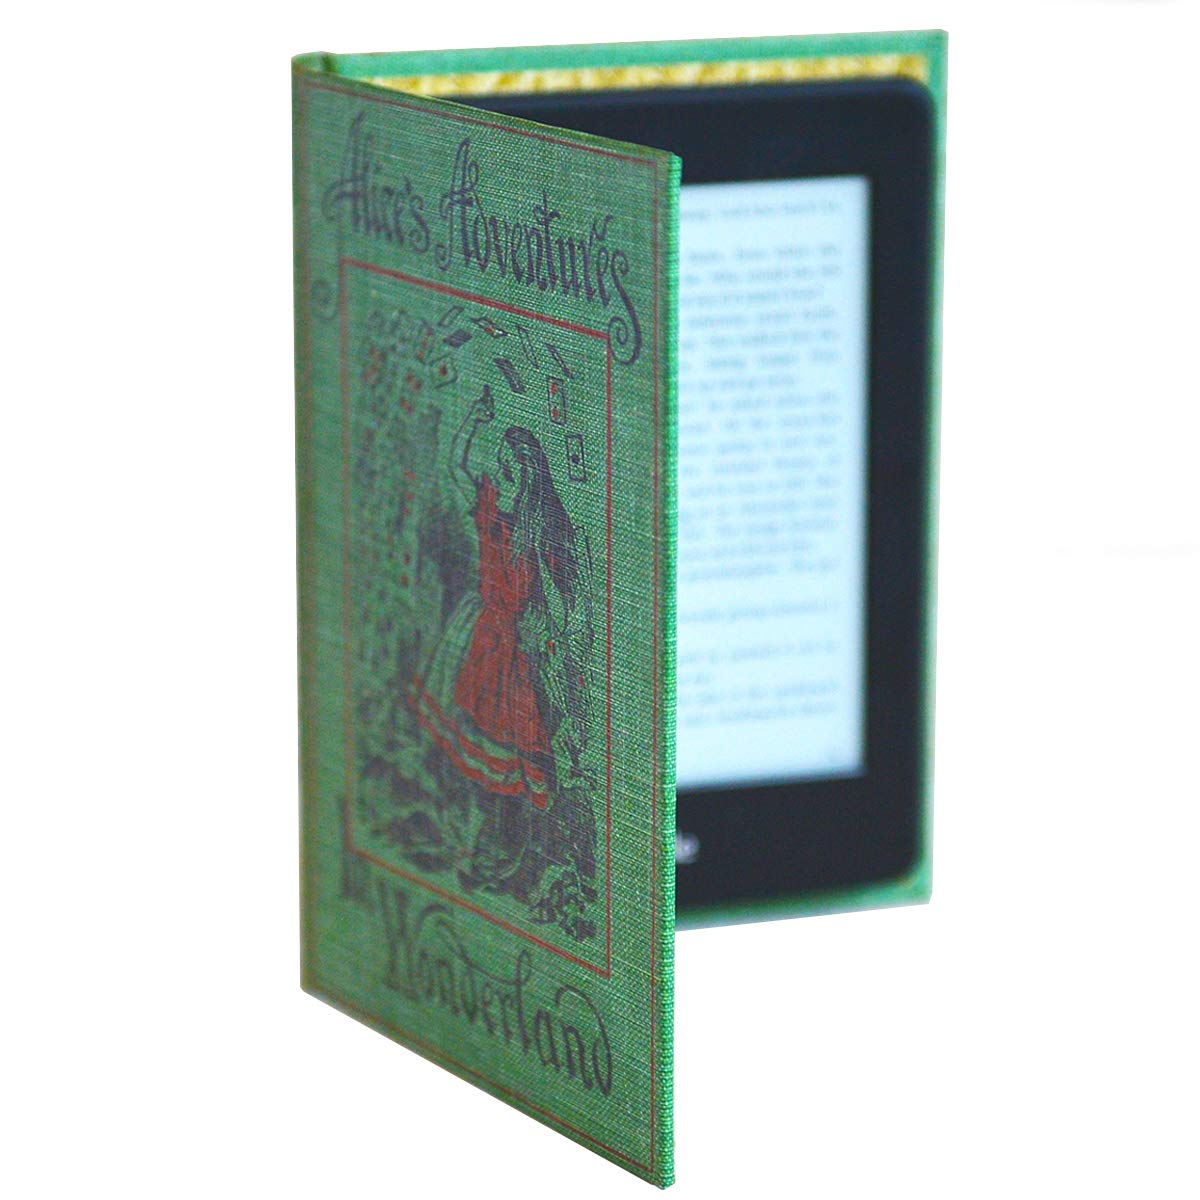 Kindle Paperwhite Case (All Versions Including 2018 Waterproof Model) Book Cover Style (New Alice in Wonderland)